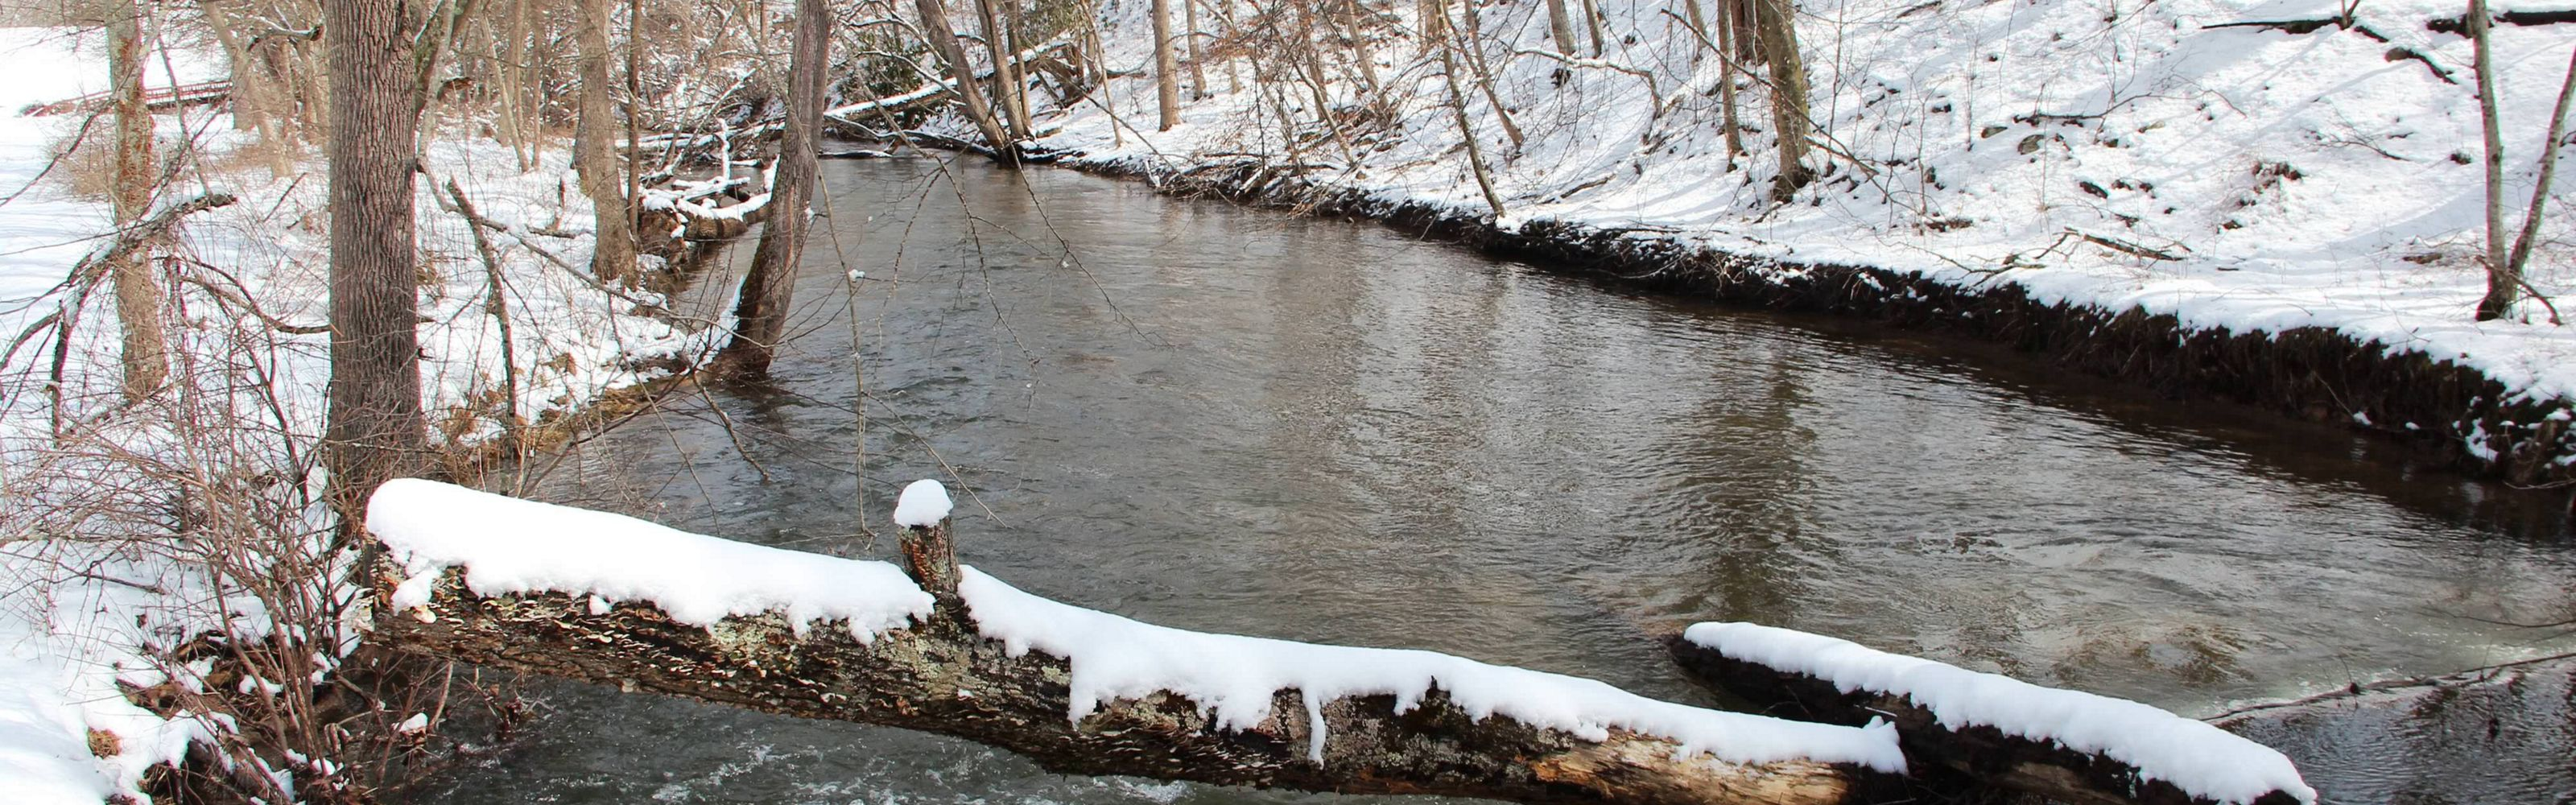 A creek flows through a snow covered forest.